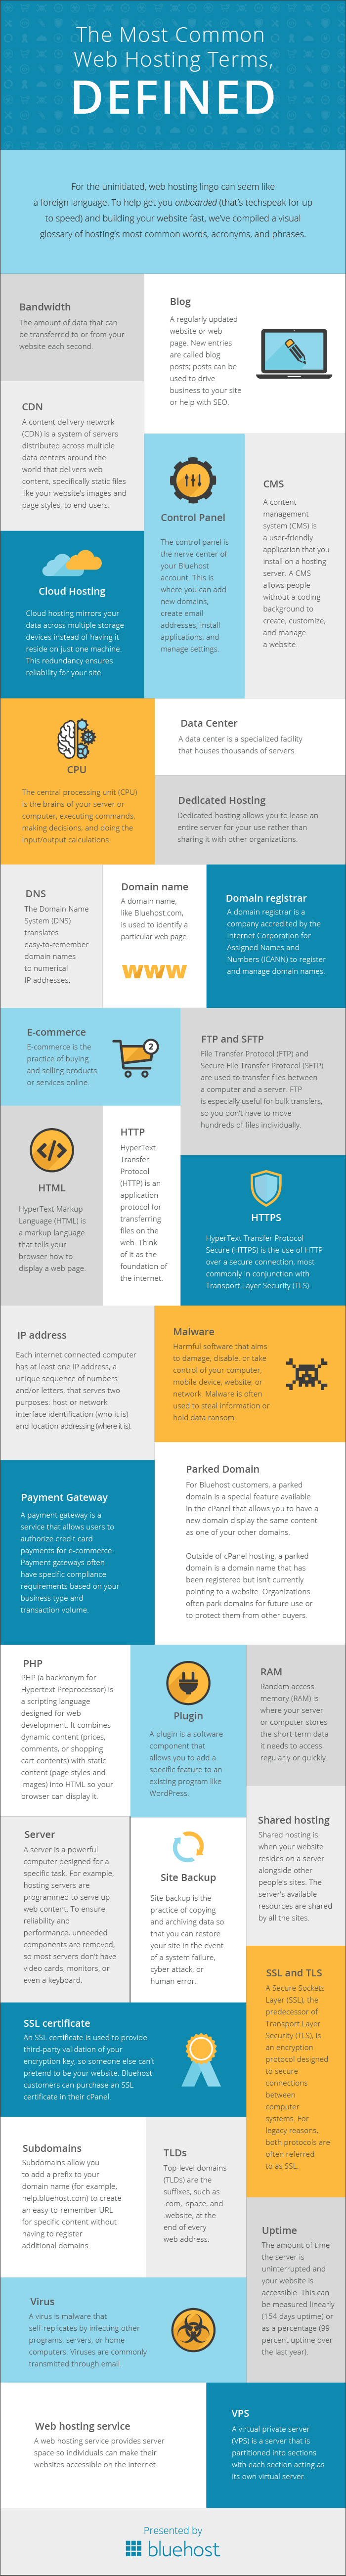 35 Most Common Web Hosting Terms You Need To Know